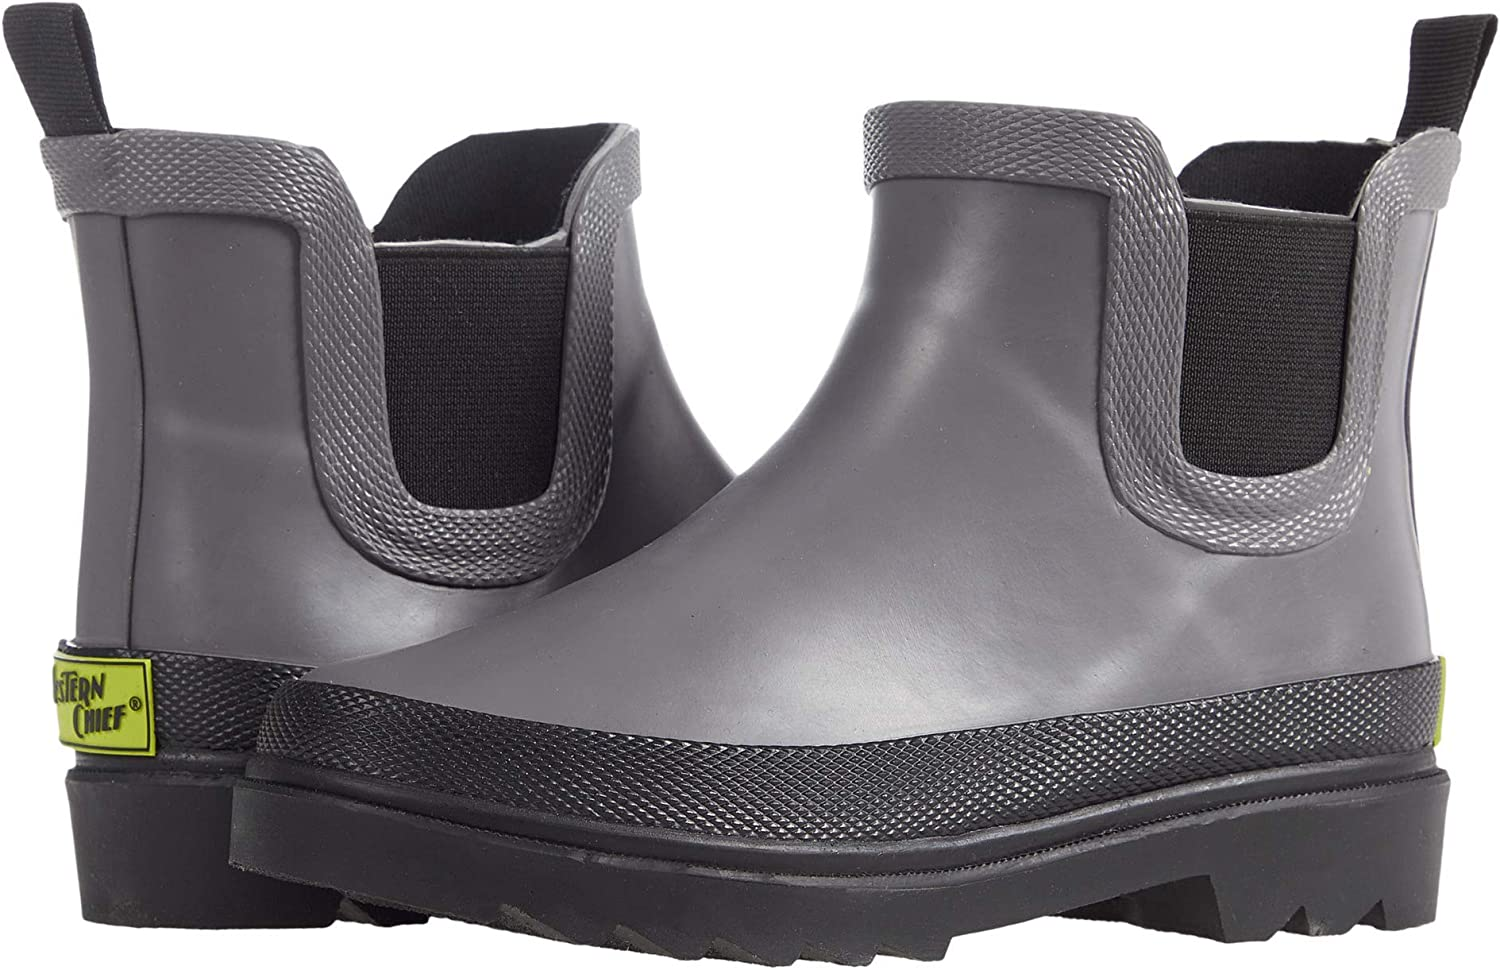 Western Chief Kids Stomp Chelsea Kid Boot Big New product Memphis Mall type Little